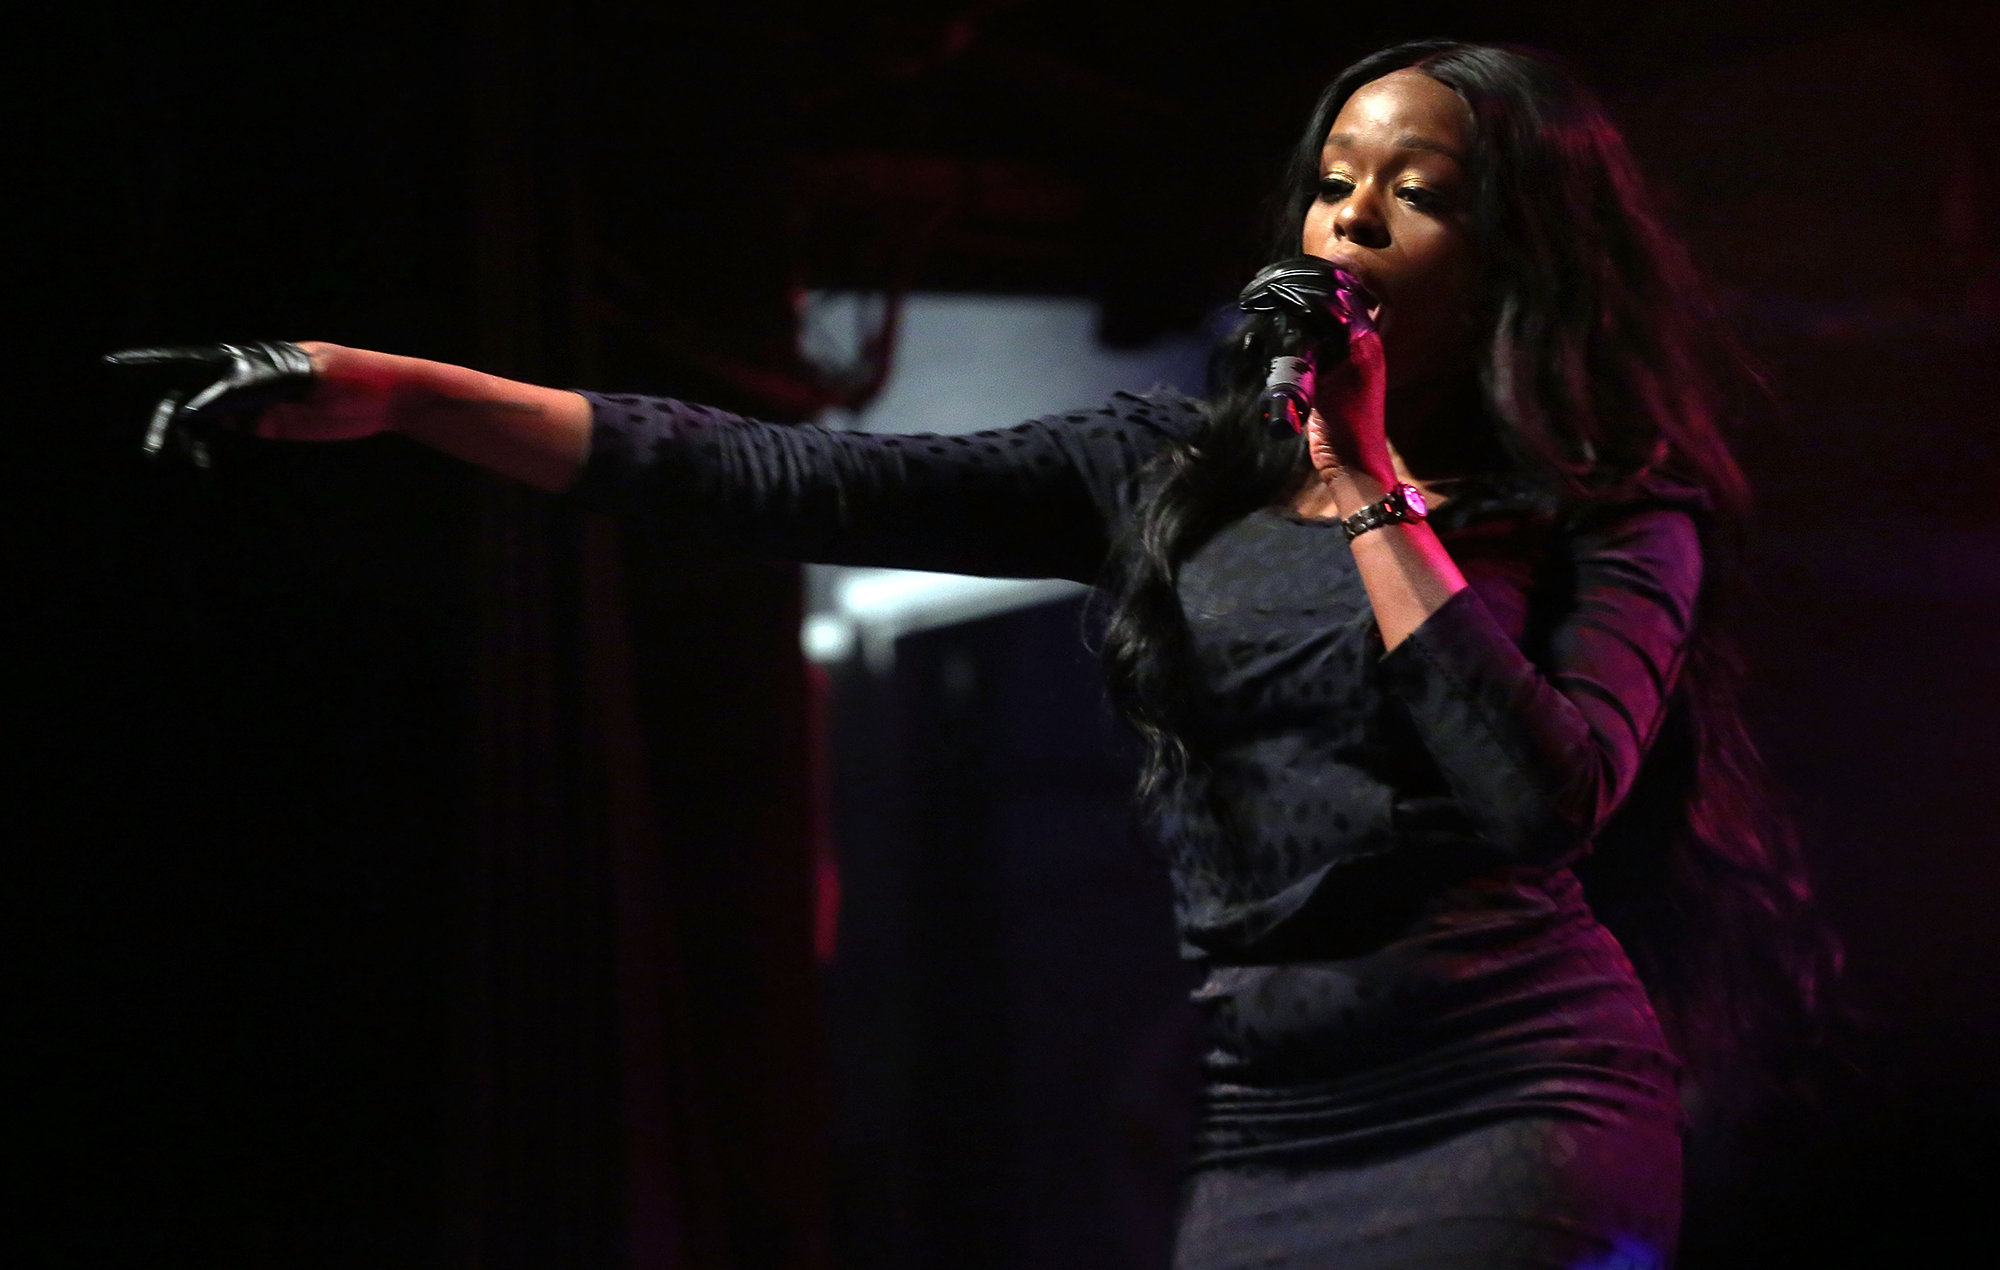 Azealia Banks asks fans to stop streaming debut record, 'Broke With Expensive Taste' | NME